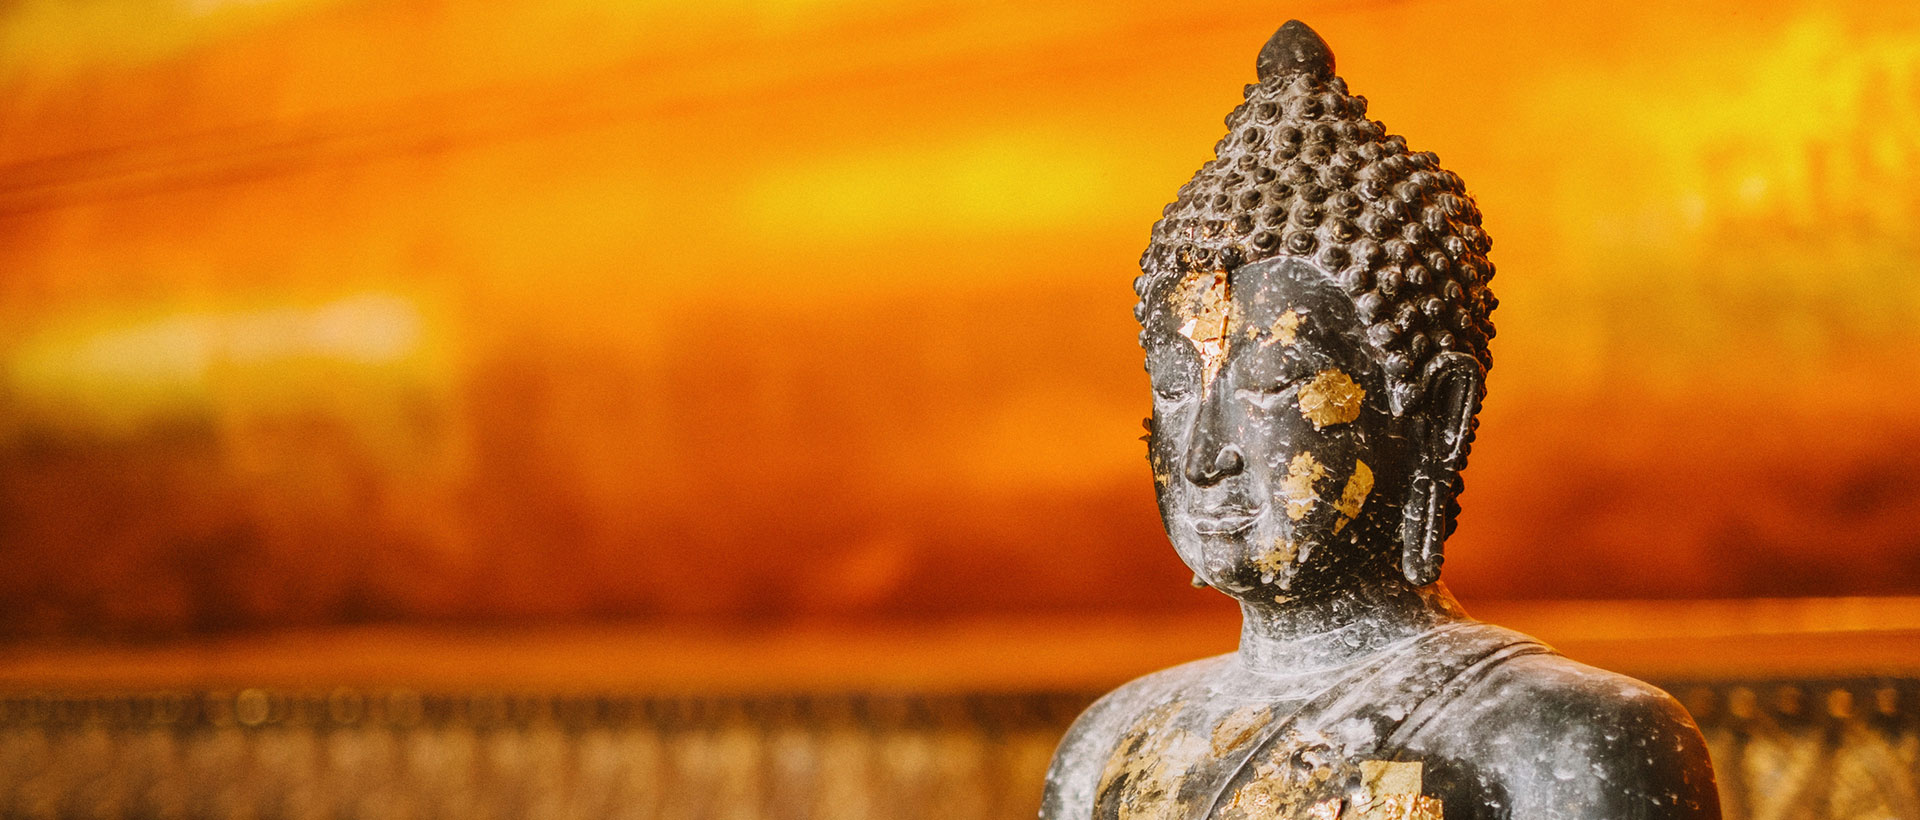 9 Things You Should Know About Hinduism